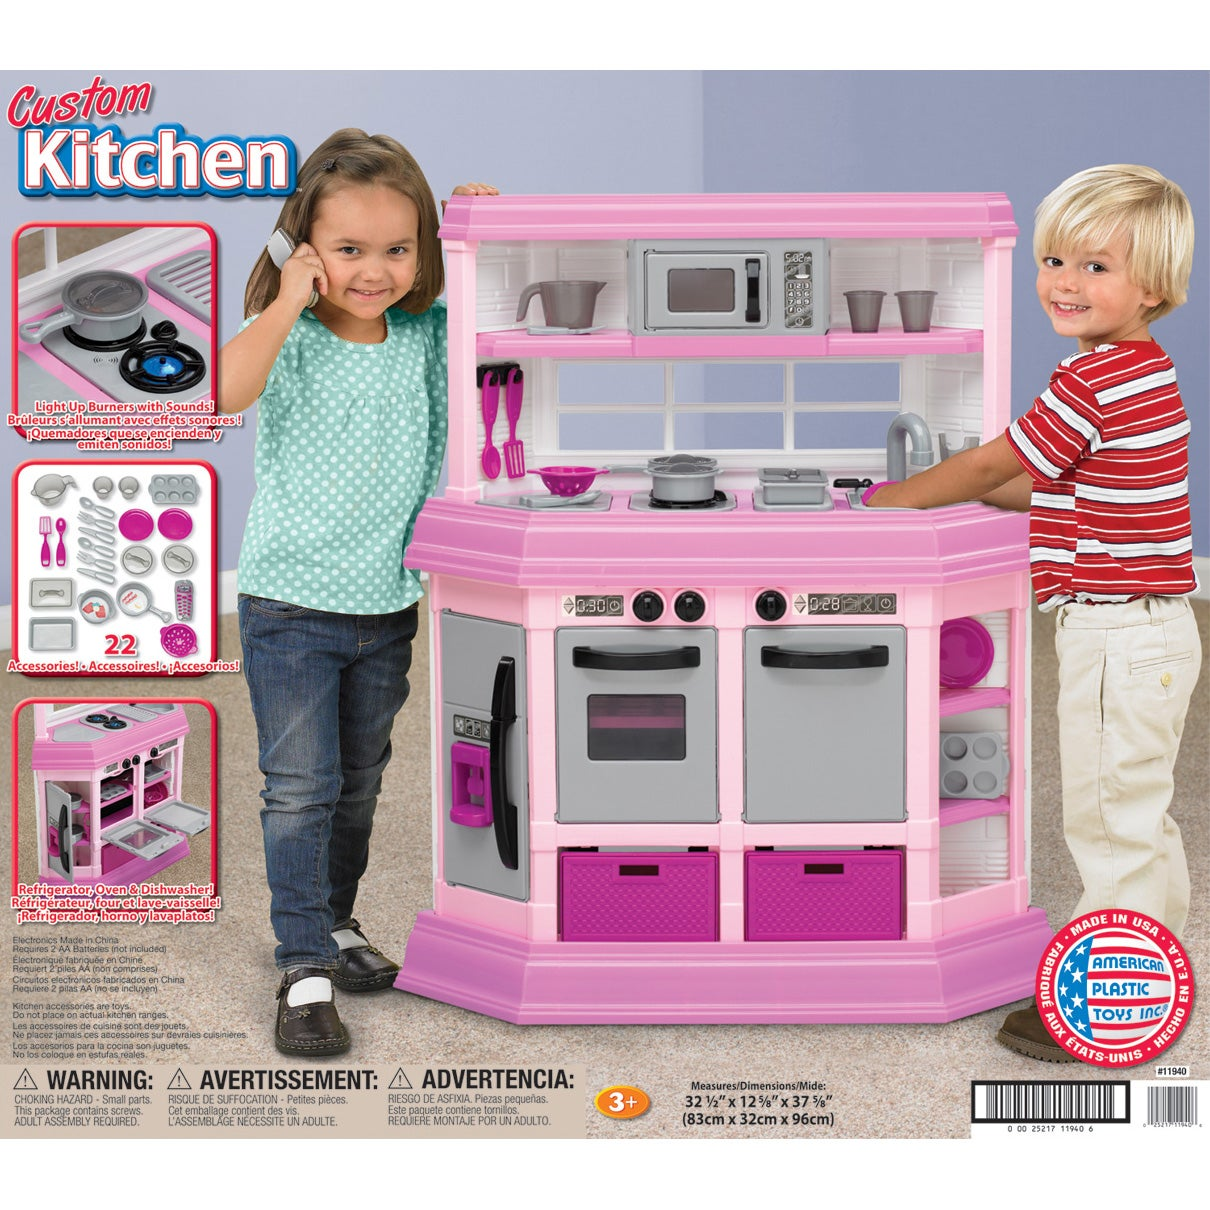 american plastic toys custom kitchen play set   free shipping today   overstock com   13920035 american plastic toys custom kitchen play set   free shipping      rh   overstock com